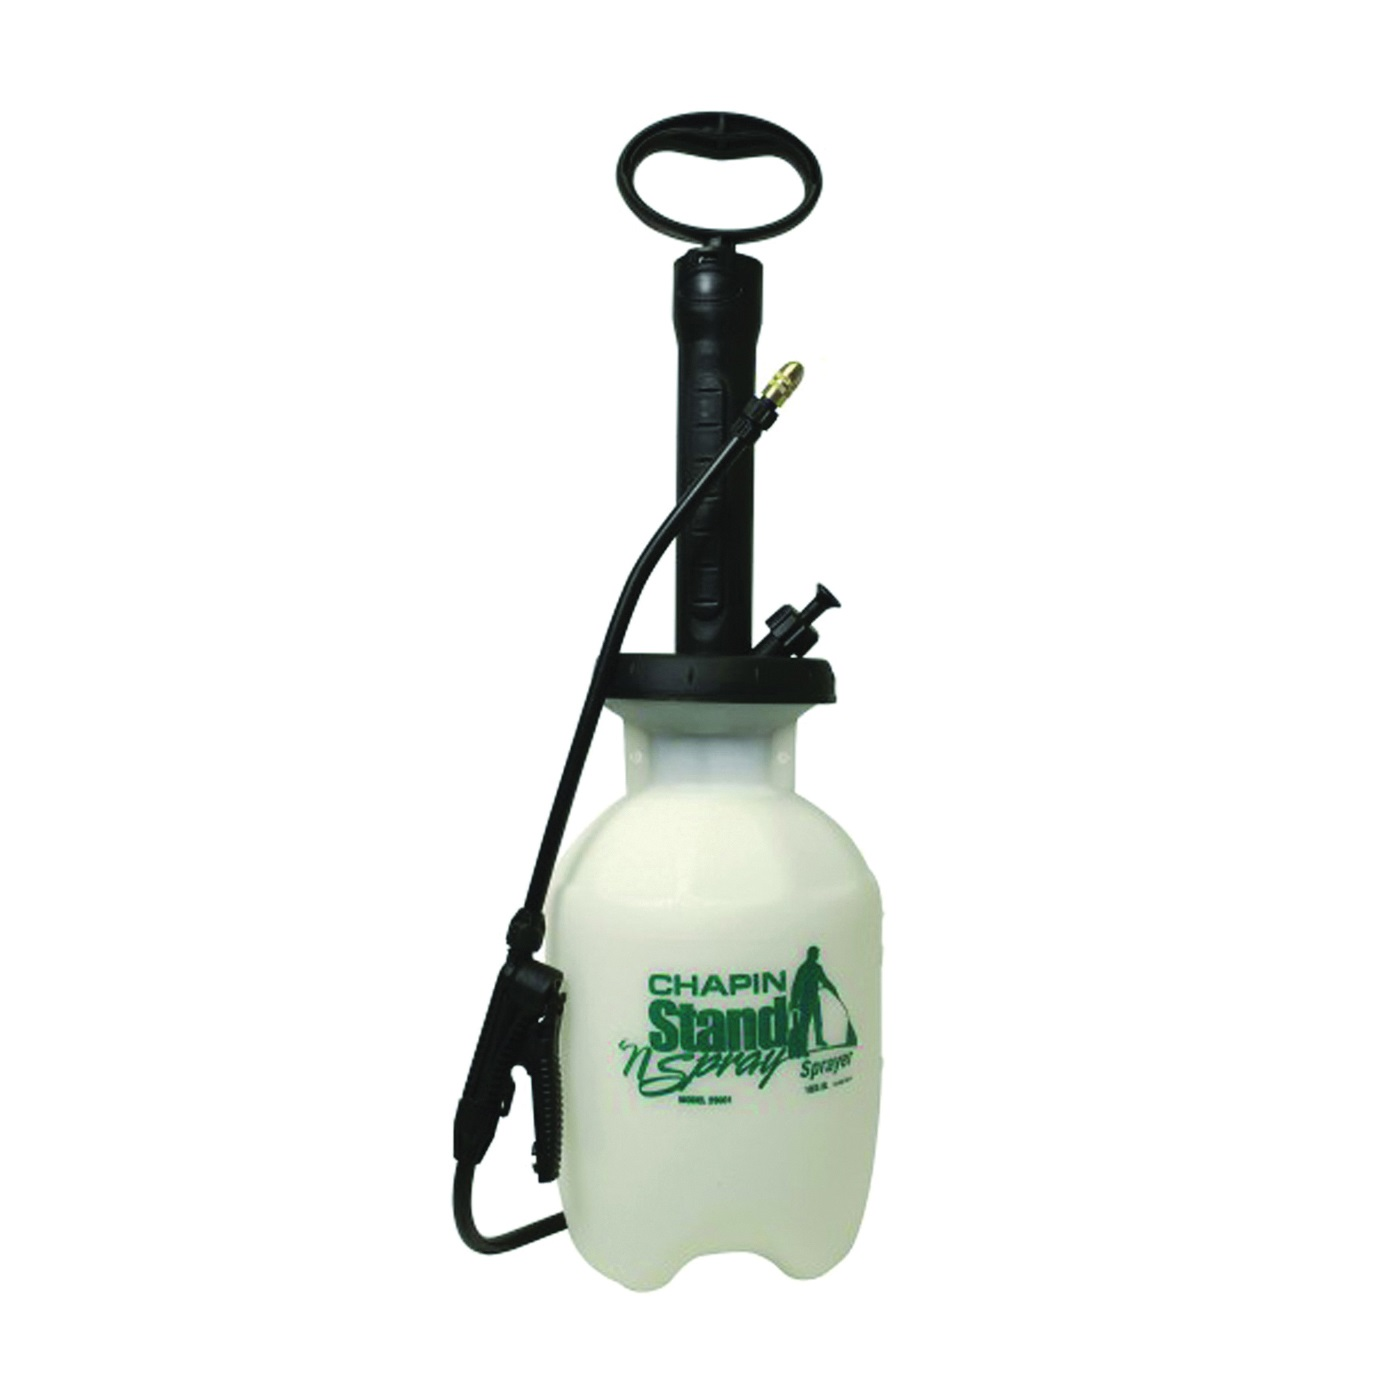 Picture of CHAPIN Stand 'N Spray 29001 Sprayer, 1 gal Tank, Poly Tank, 34 in L Hose